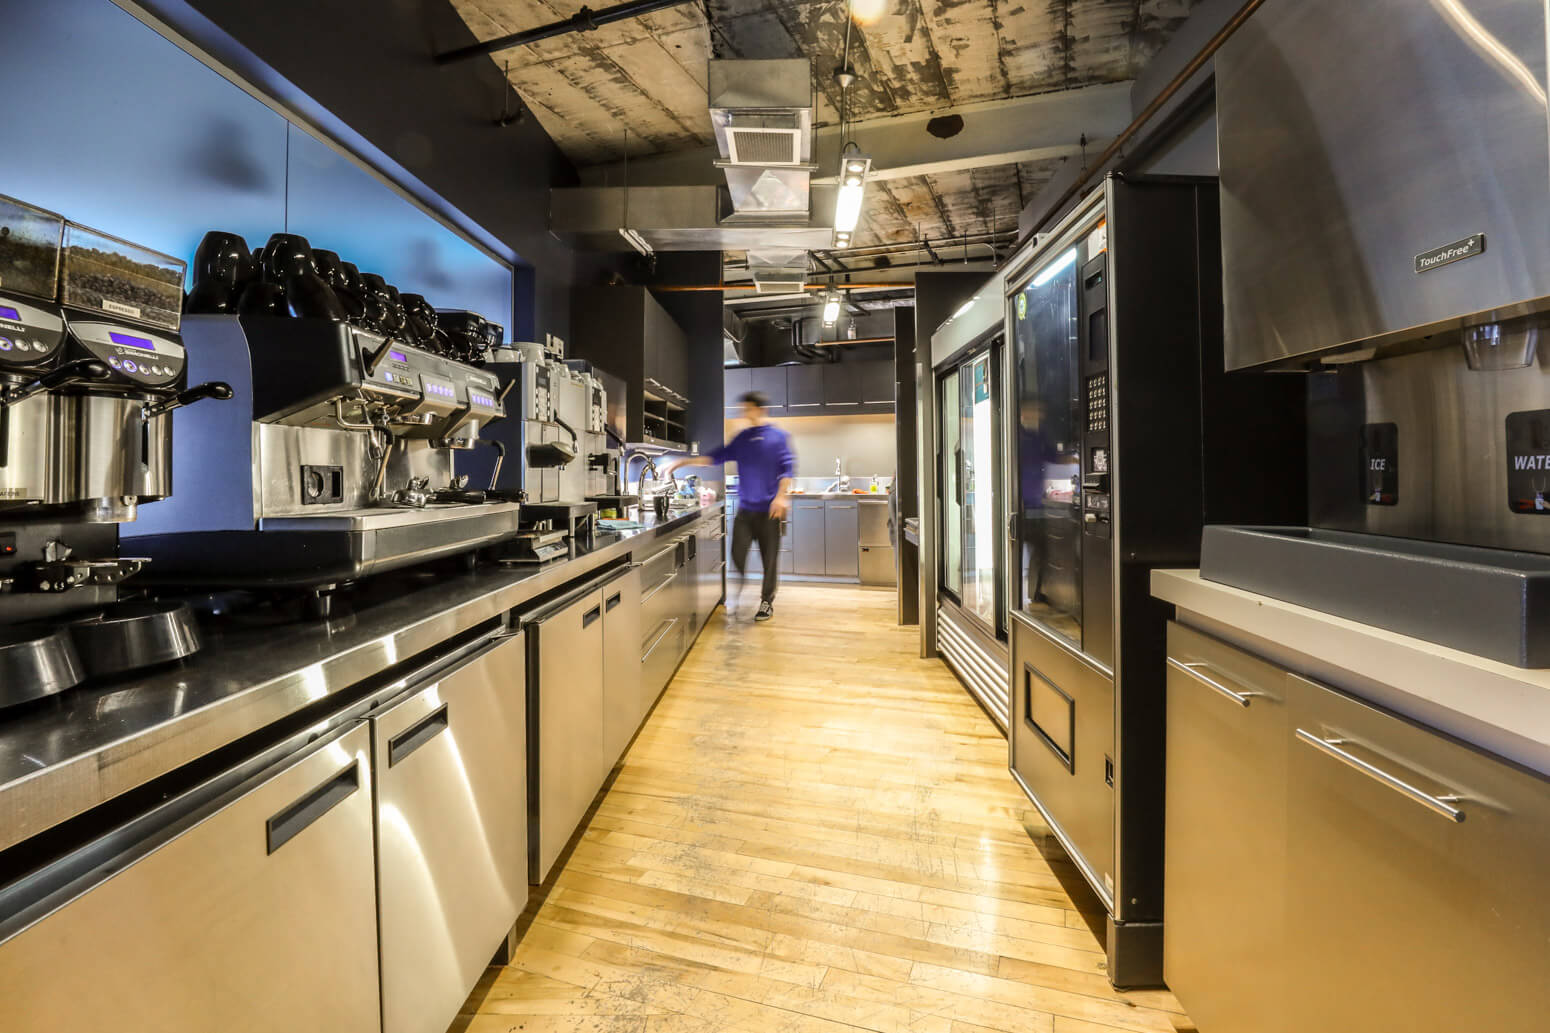 Autodesk Montreal Office Killer Spaces-2